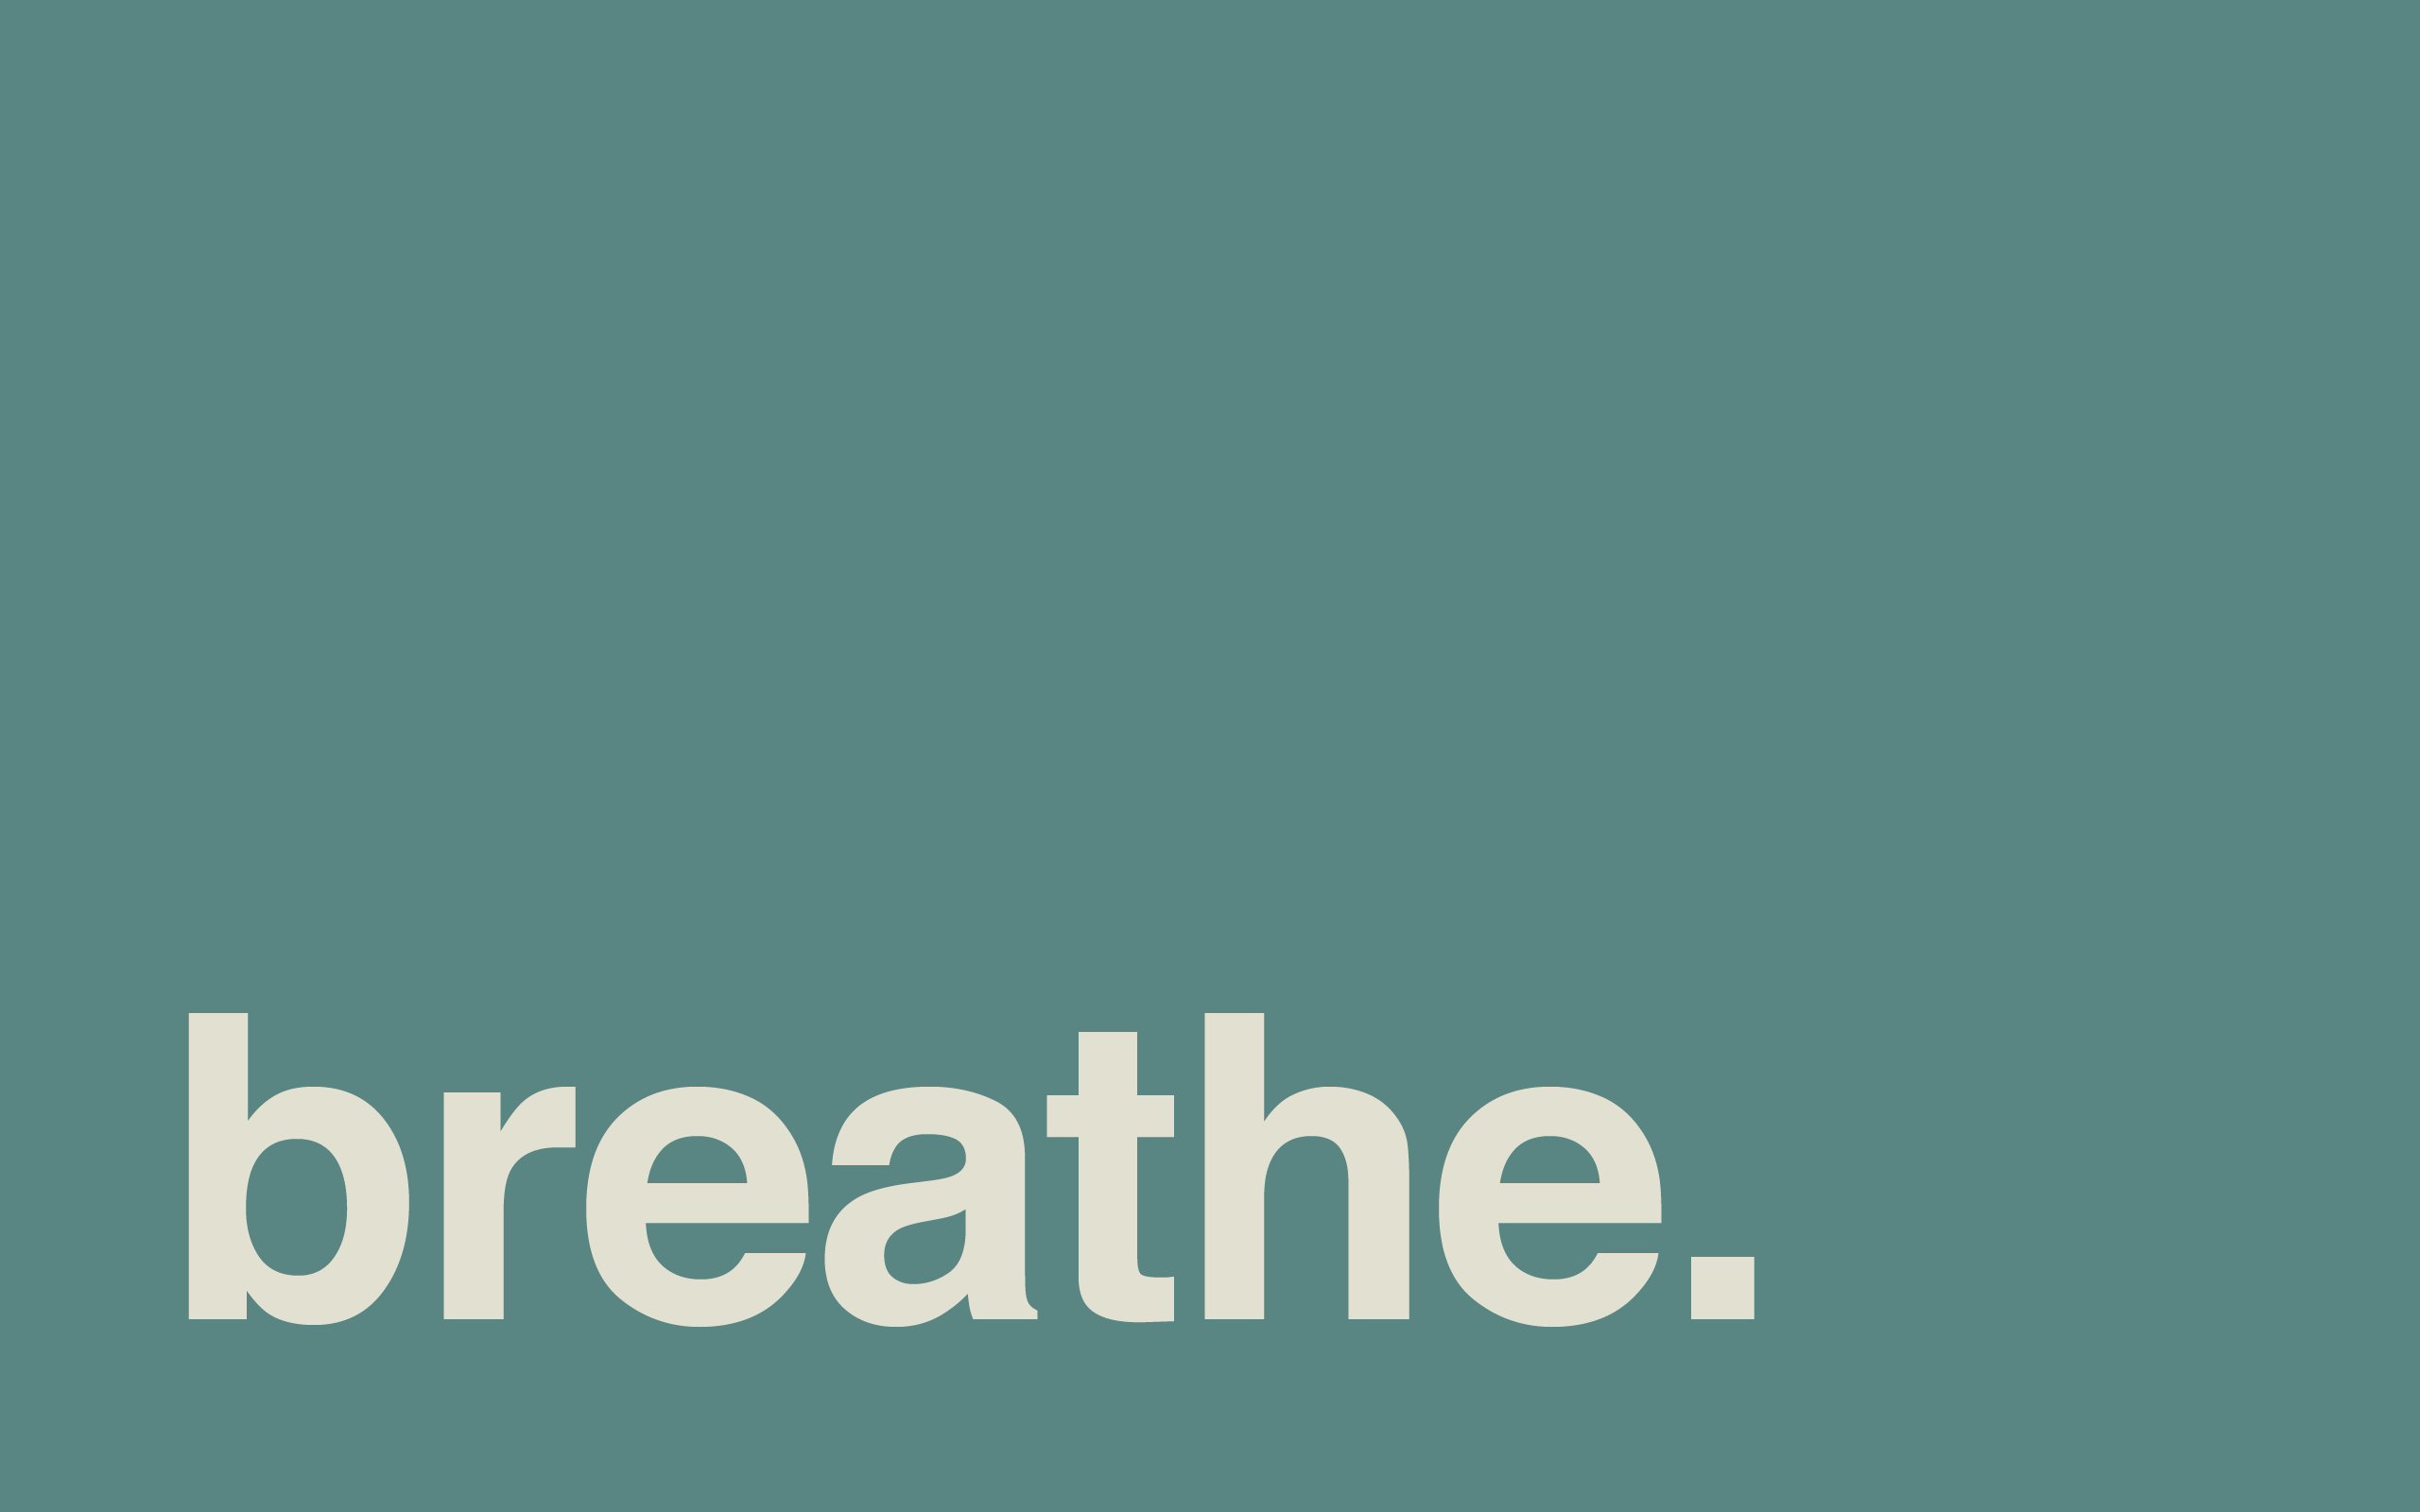 breathe_copy